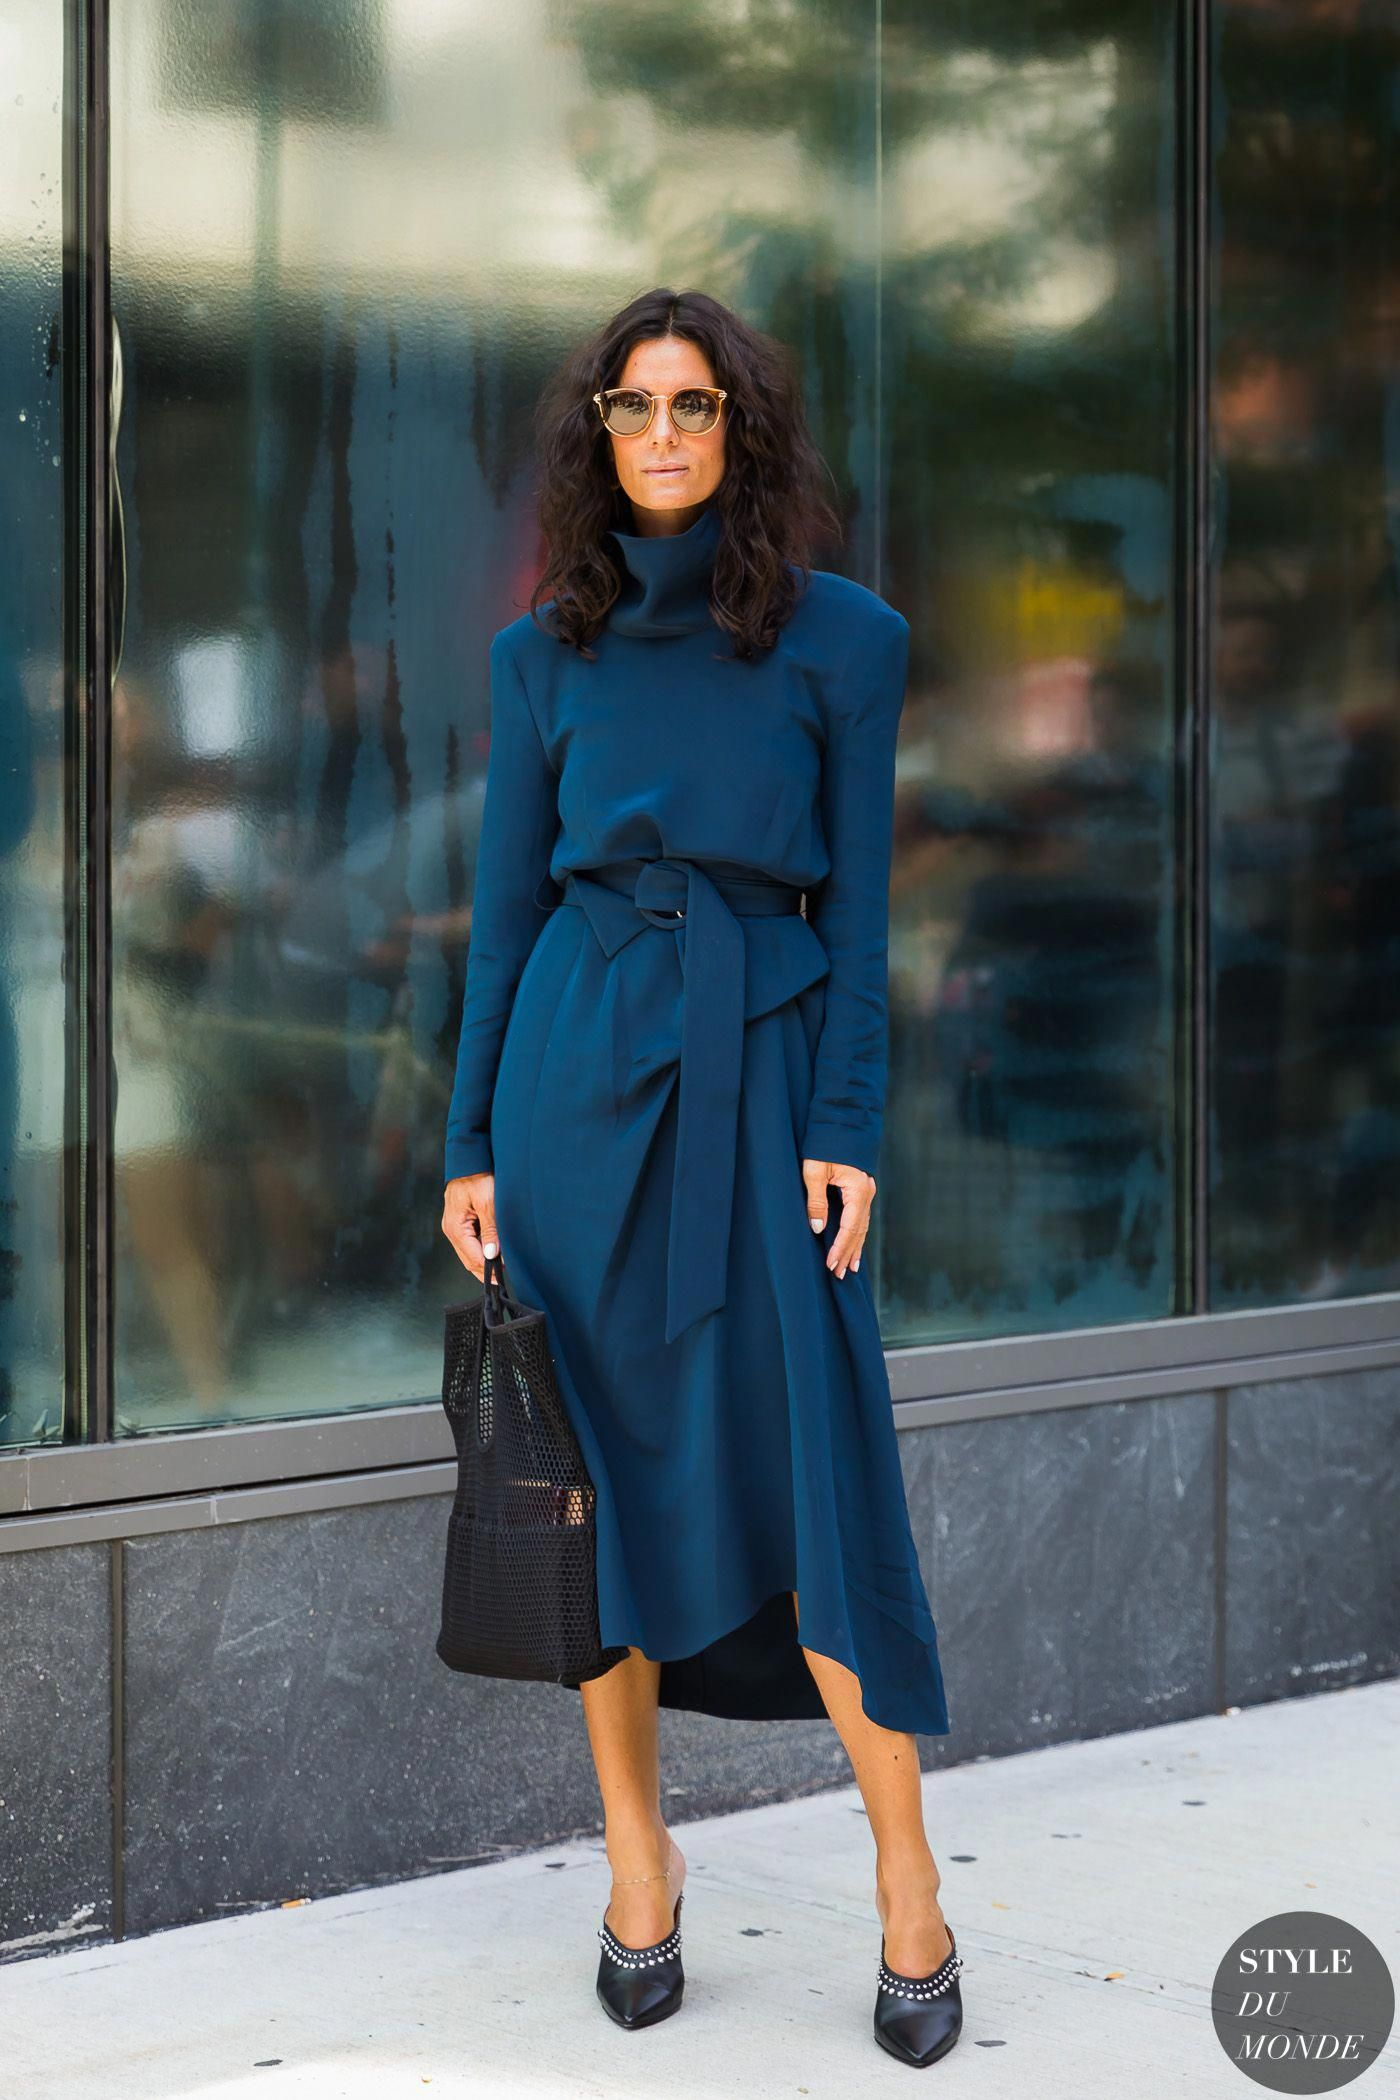 We've Got The Secrets The Fashion Experts Don't Want You To Know